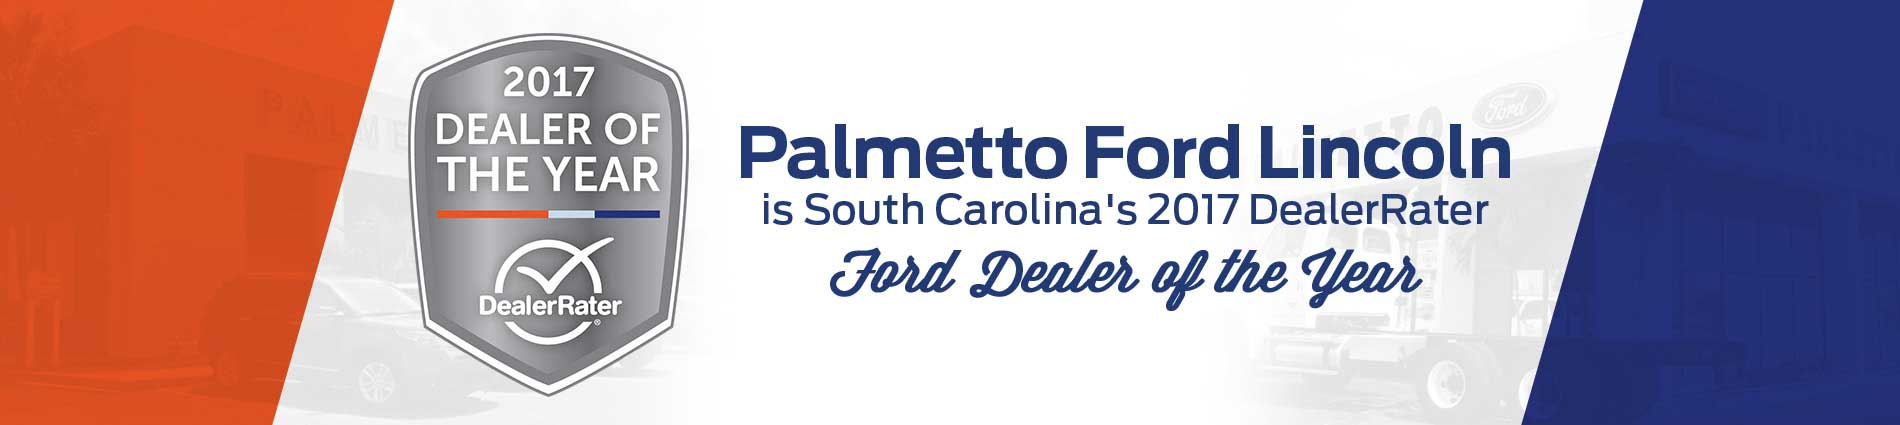 PalmettoFord-DealerRater-1900x425.jpg